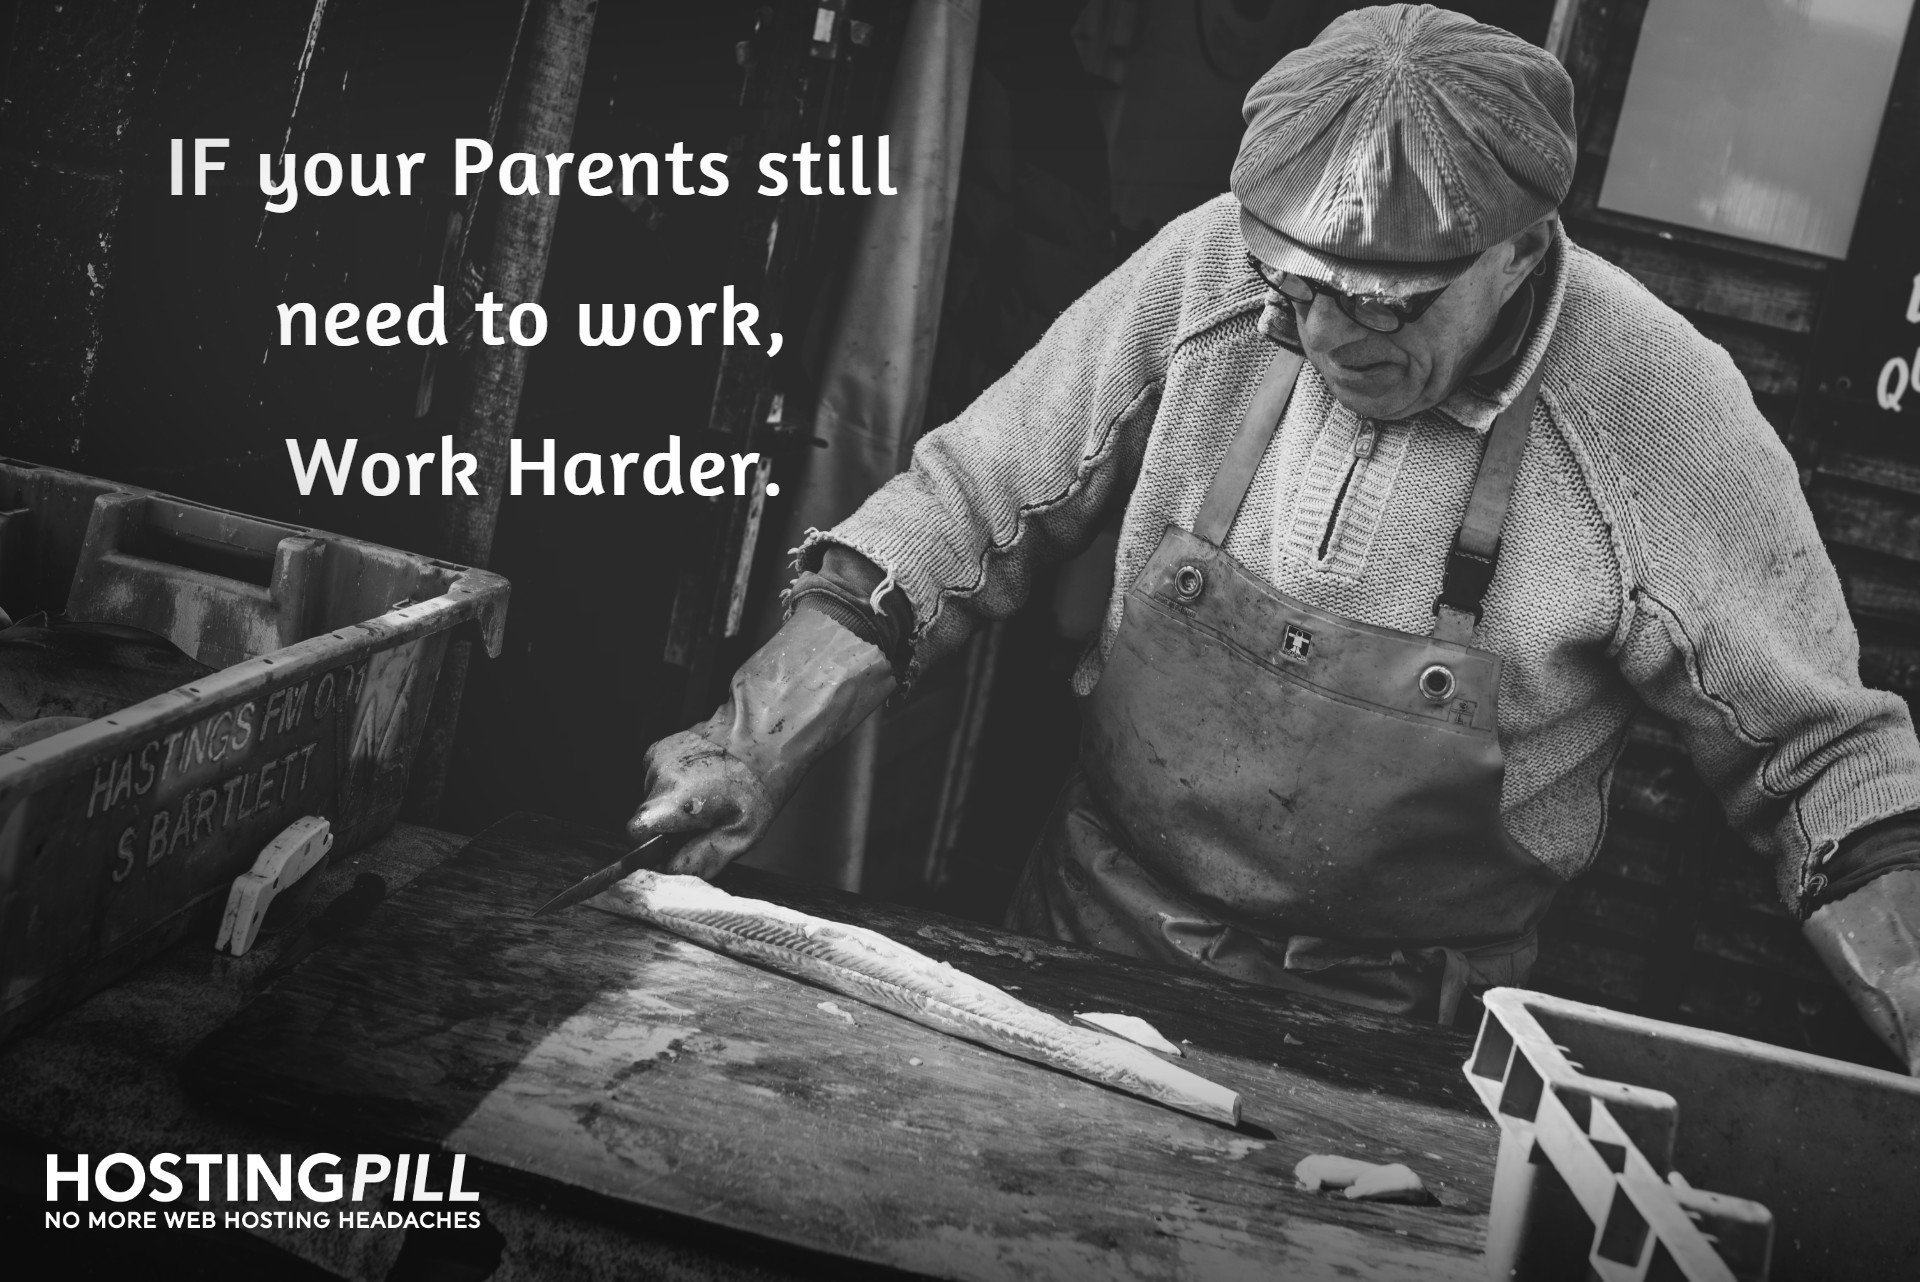 If your parents still need to work, work harder.